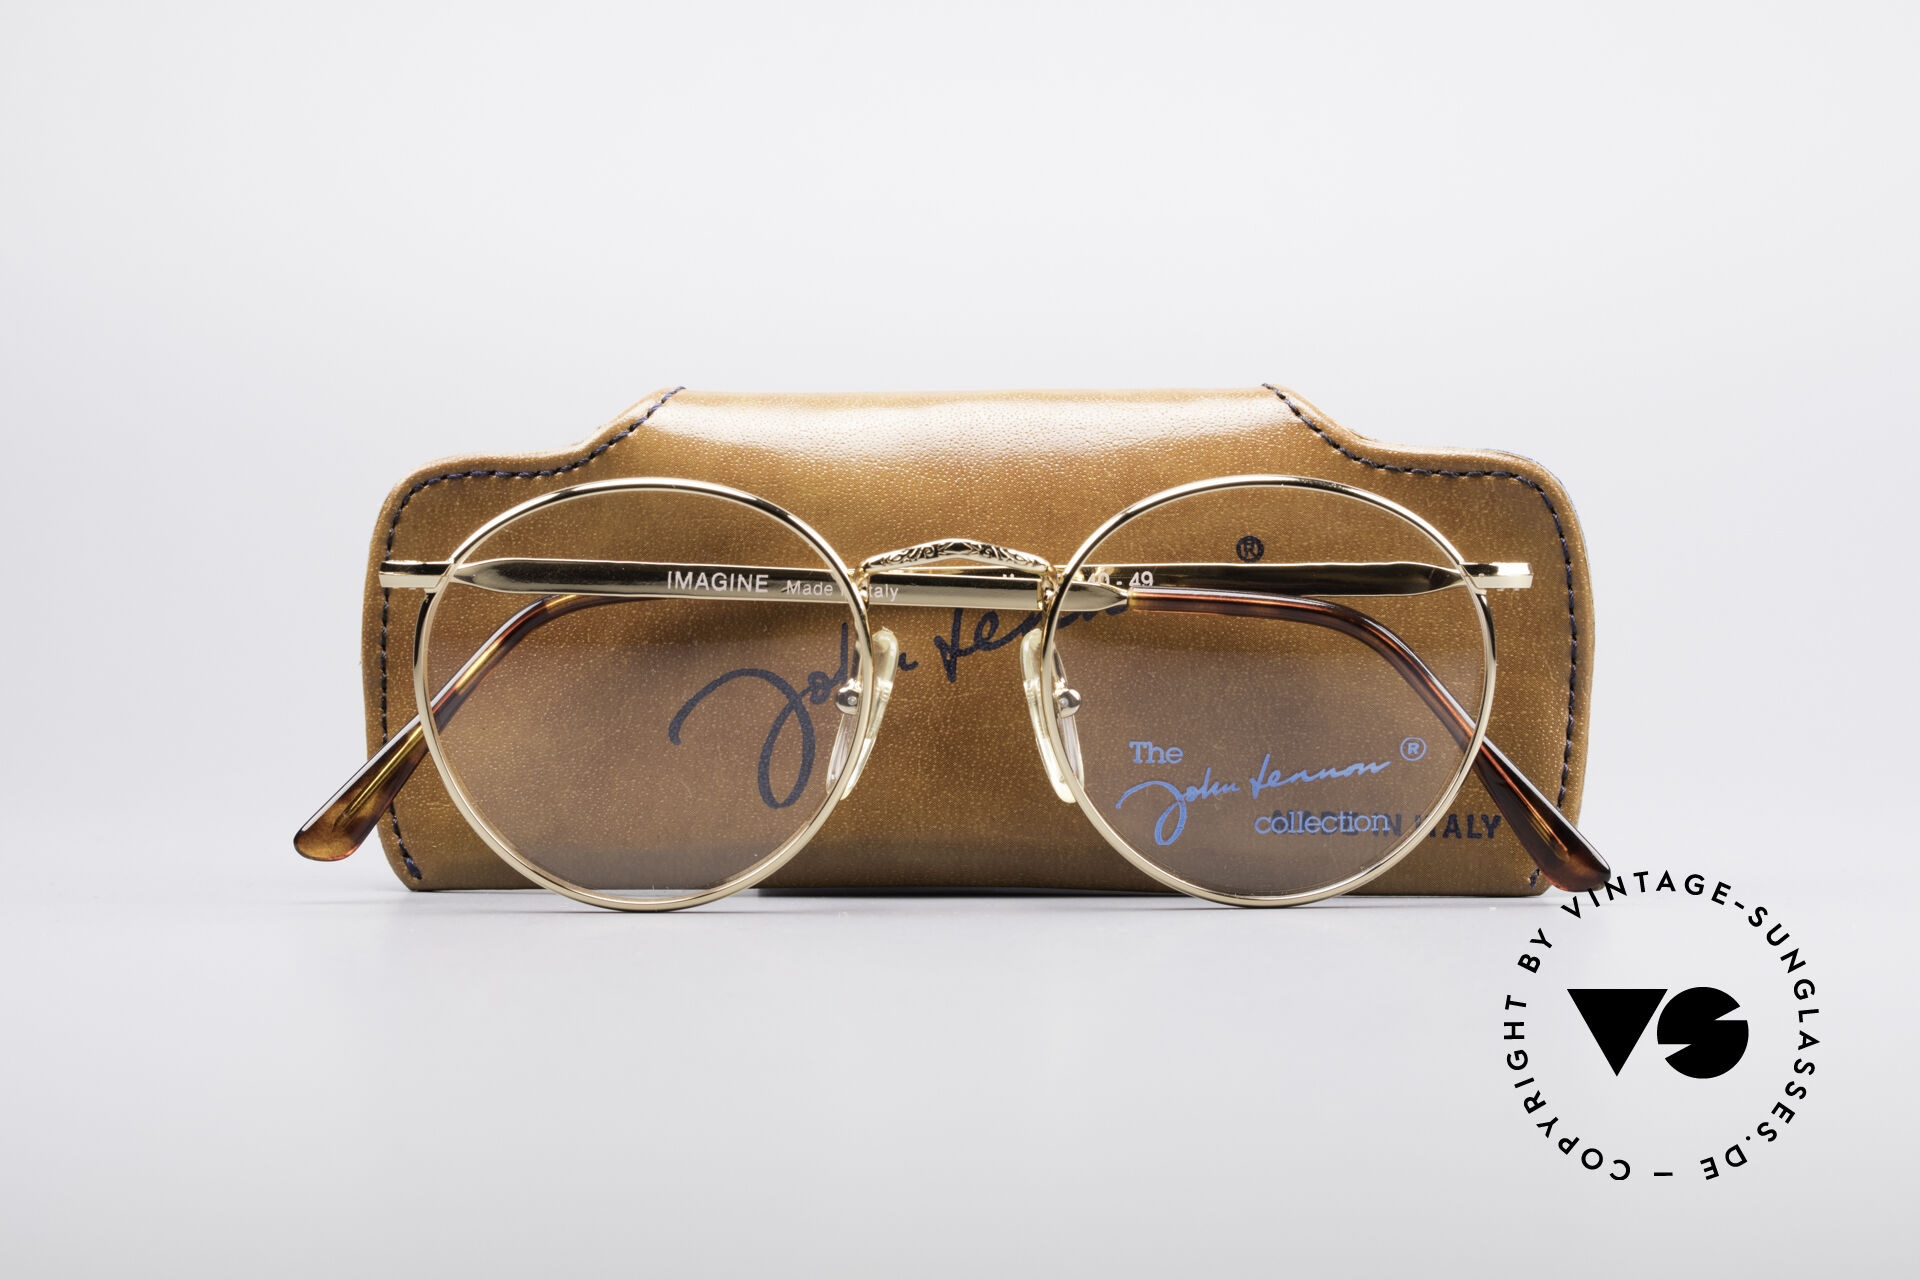 John Lennon - Imagine Small Round Vintage Frame, NO RETRO PANTO EYEGLASSES; but a rare old Original!, Made for Men and Women